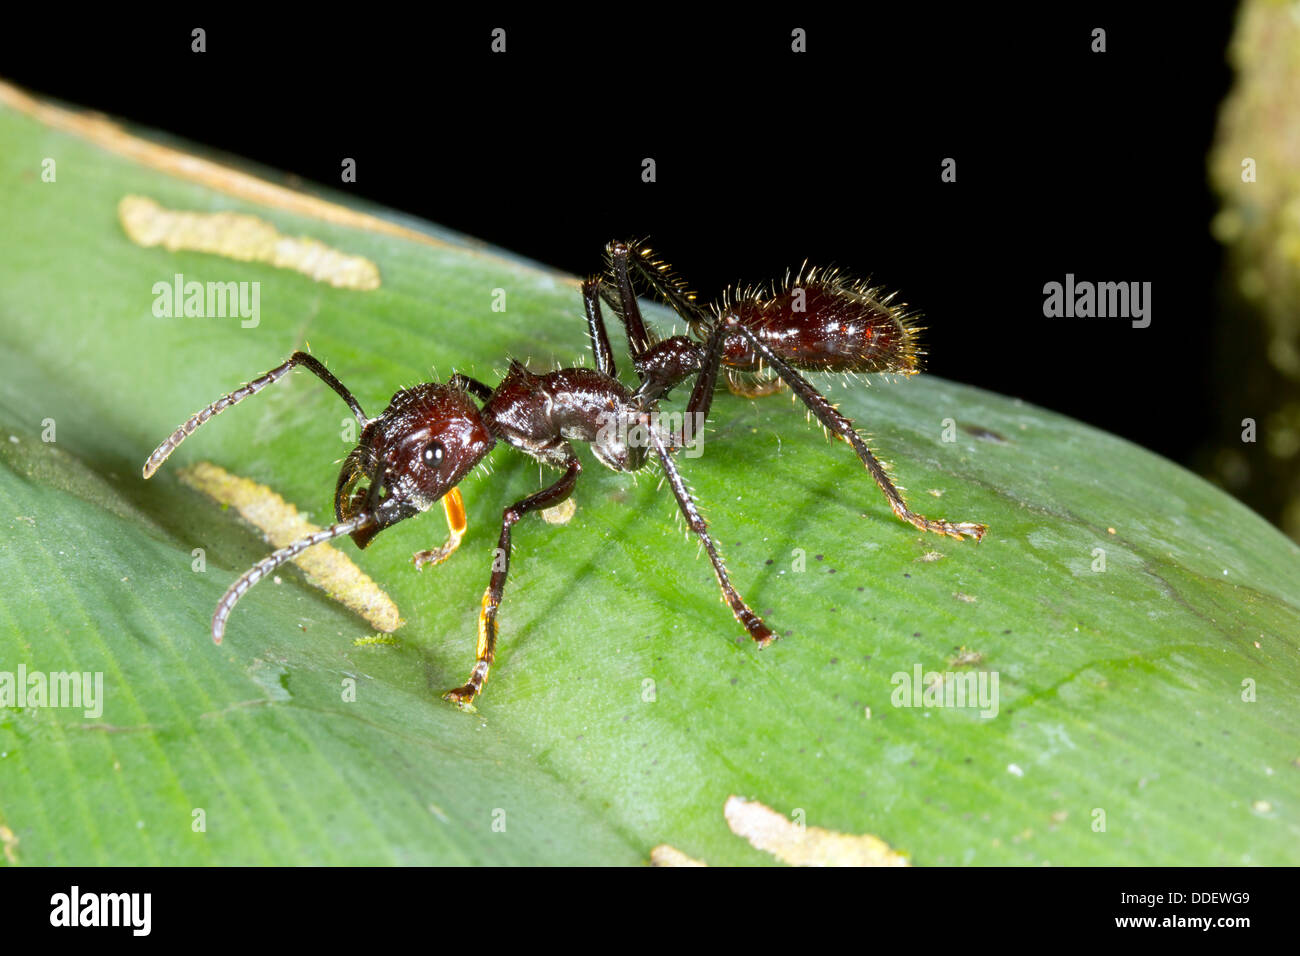 Bullet Ant or Conga Ant (Paraponera clavata), One of the largest ants. Has a very painful sting. Stock Photo